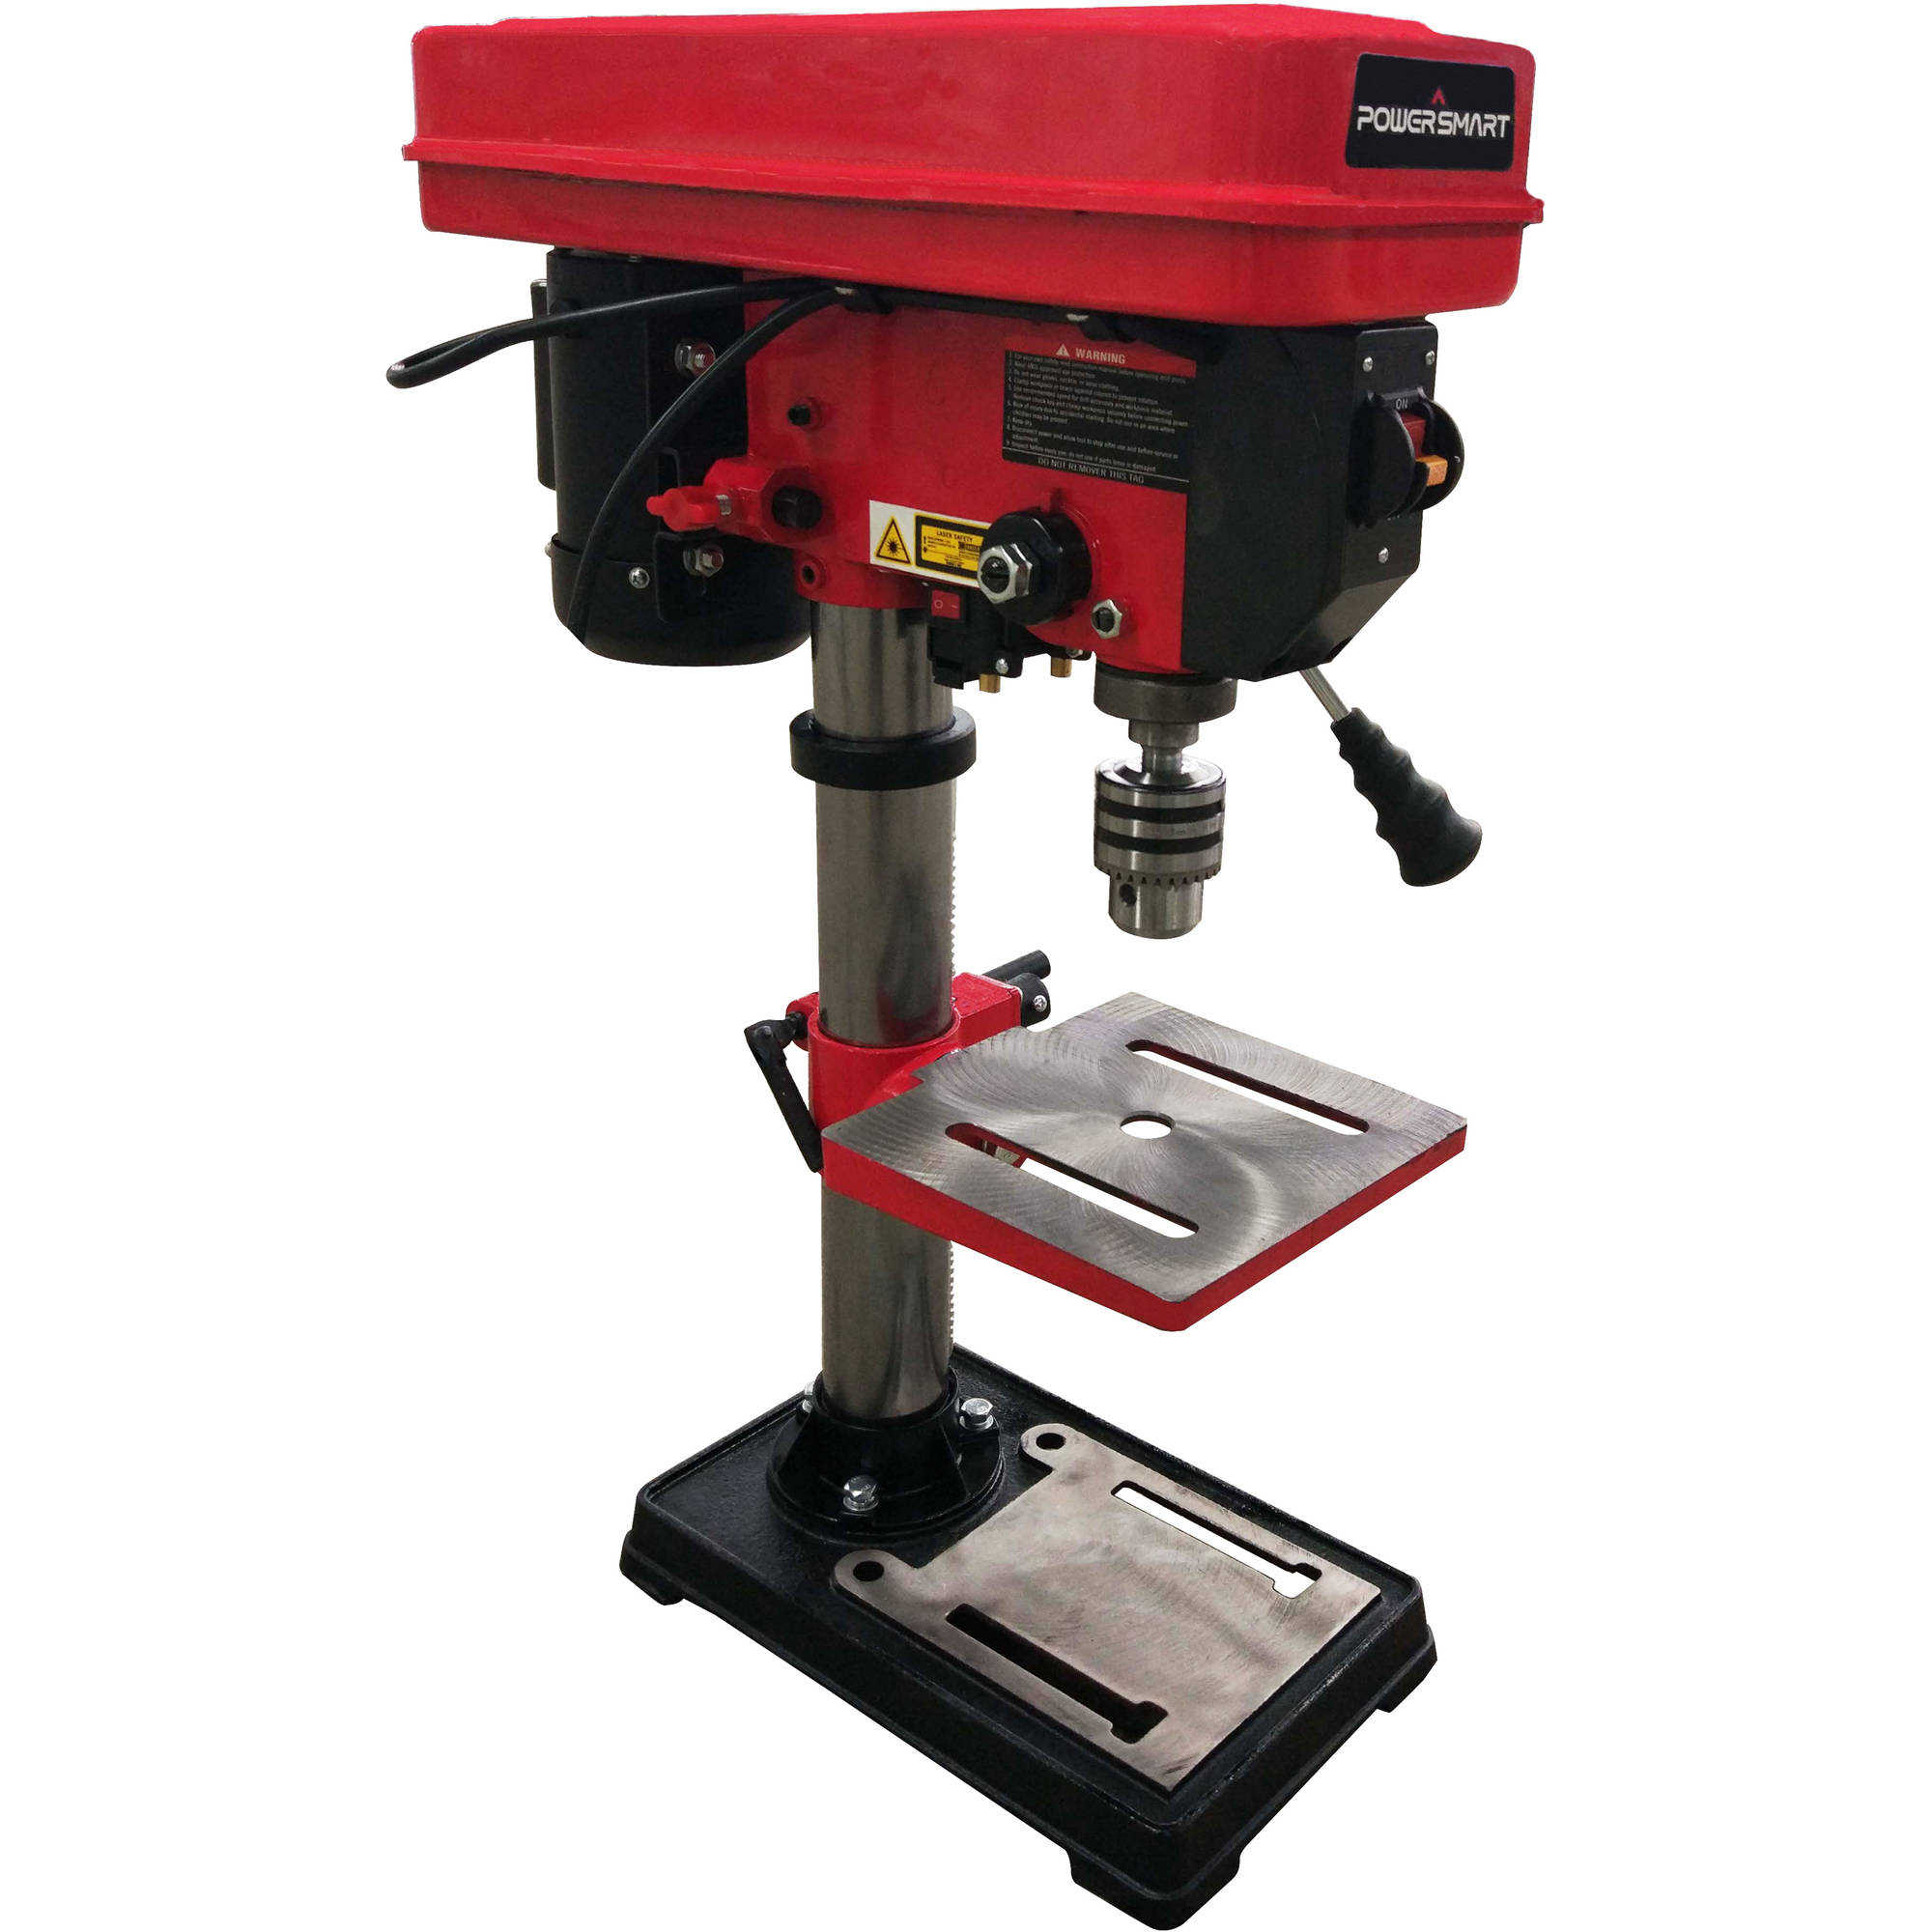 PowerSmart PS310 10' 12 Speed Drill Press with Laser Guide